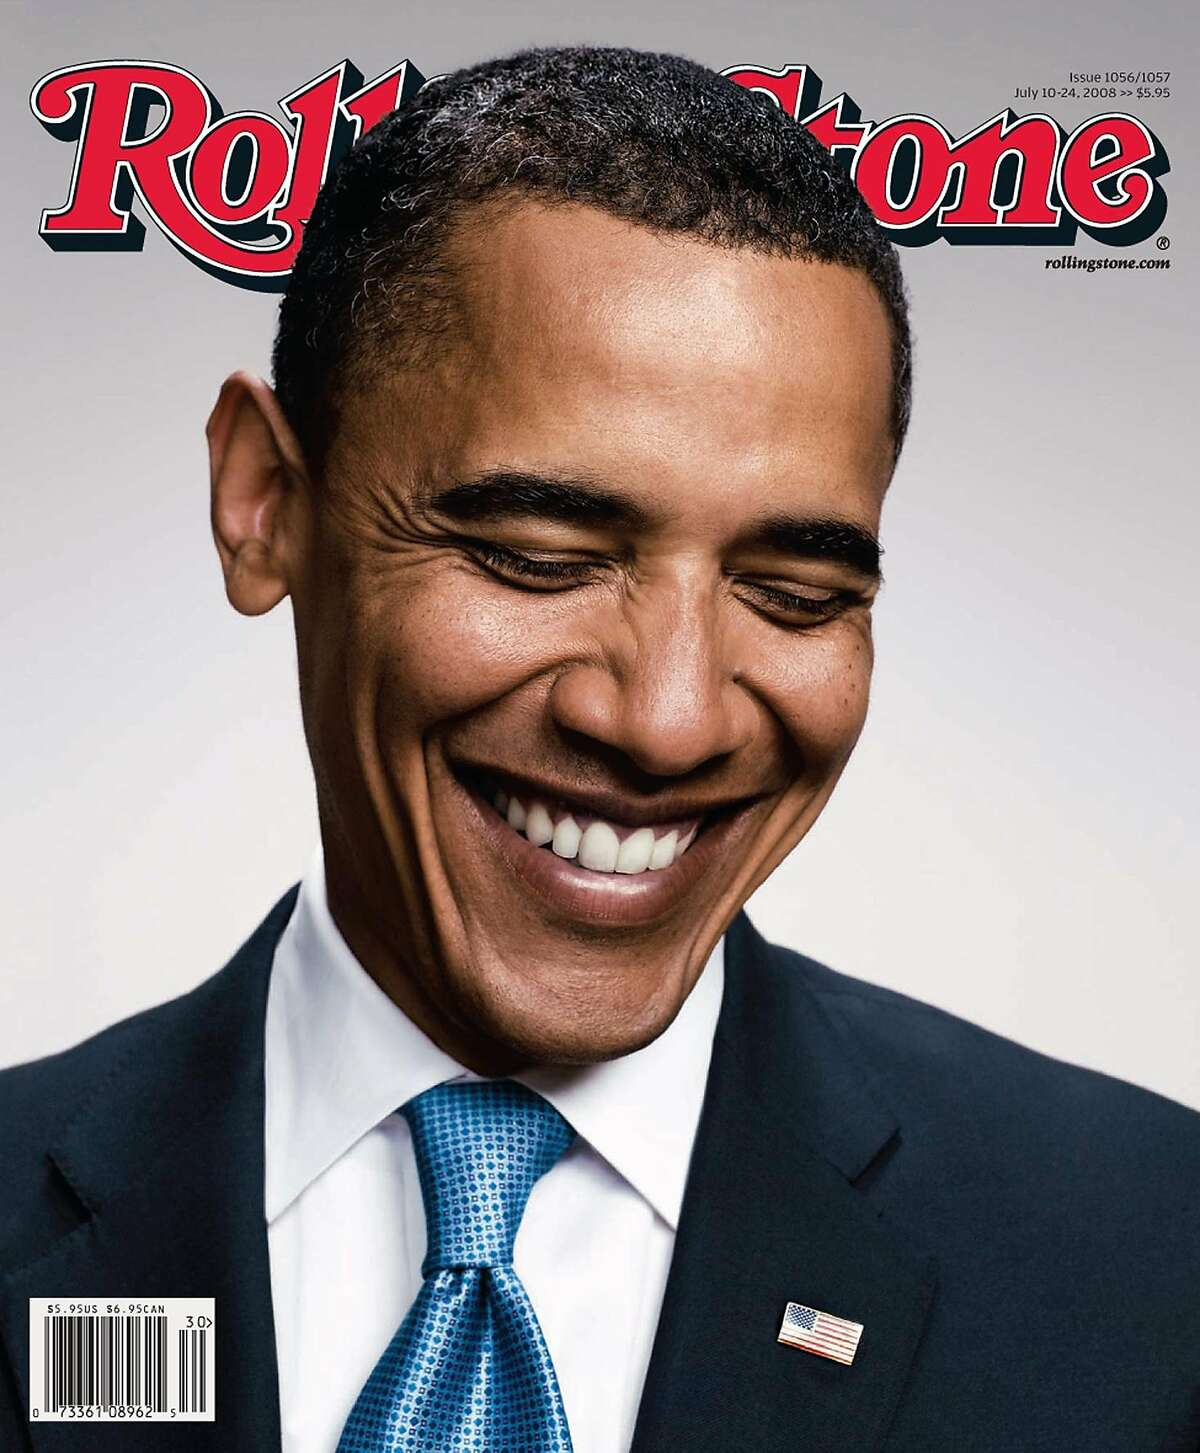 MAGAZINE COVER -- This undated handout photo provided by Rolling Stone Magazine shows the cover July 10 cover of the magazine featuring Democratic presidential candidate Sen. Barack Obama, D-Ill. promoting the magazines interview with Sen. Obama. (AP Photo/Rolling Stone)